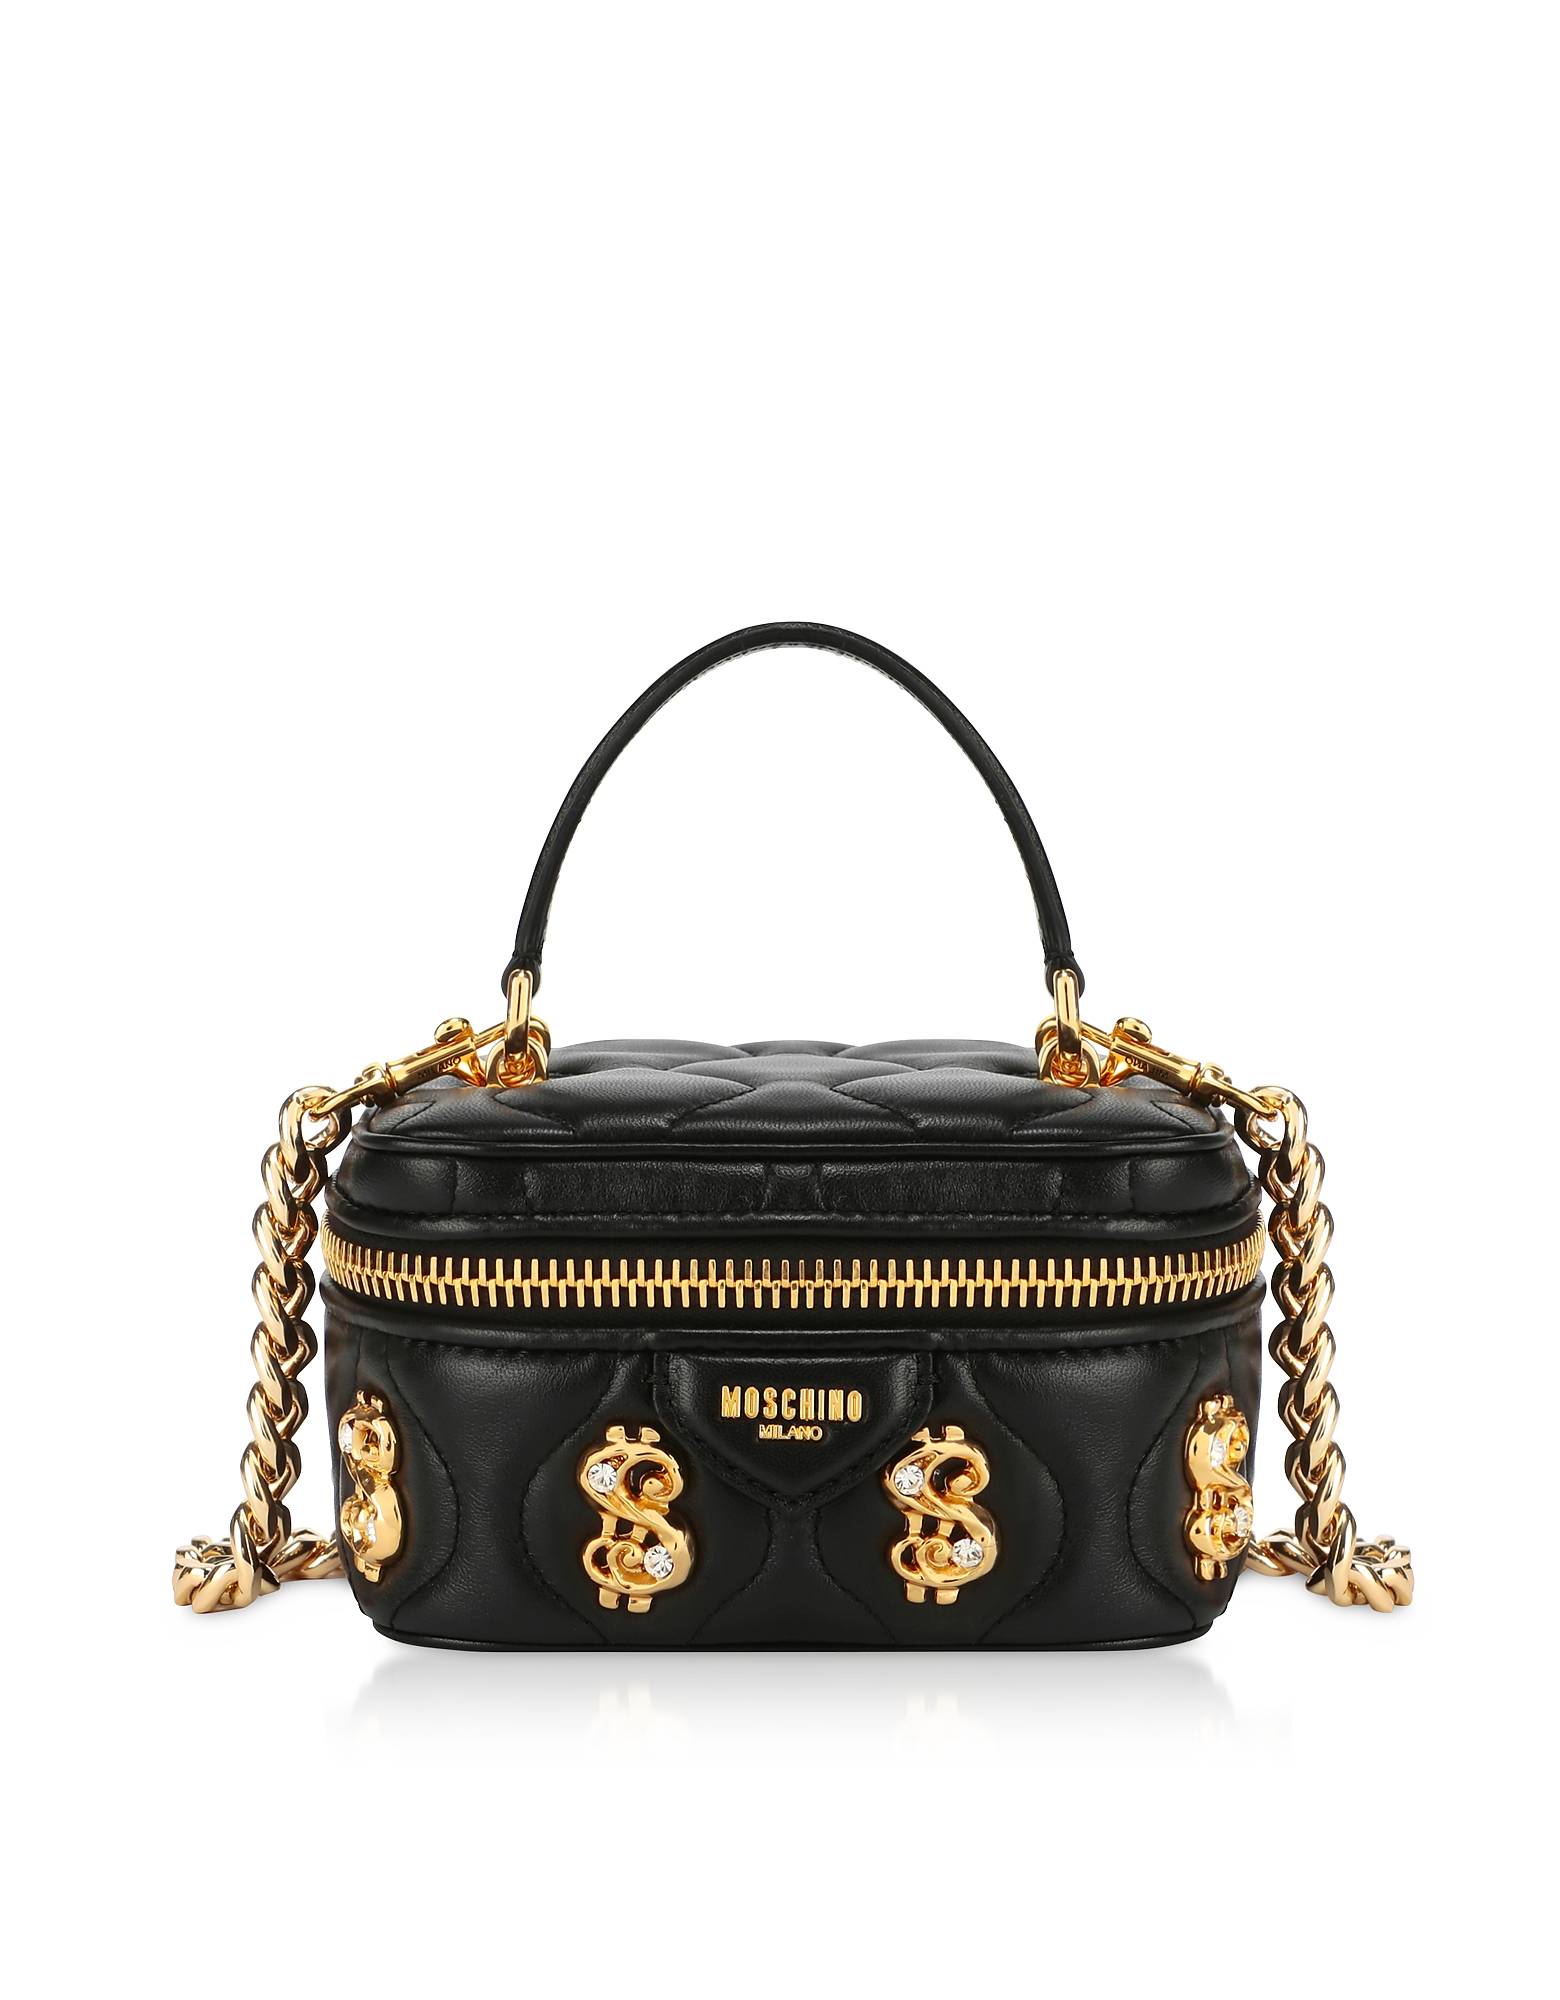 UPC 657536148586 product image for Moschino Designer Handbags, Black Dollars Bauletto Bag w/Nappa | upcitemdb.com